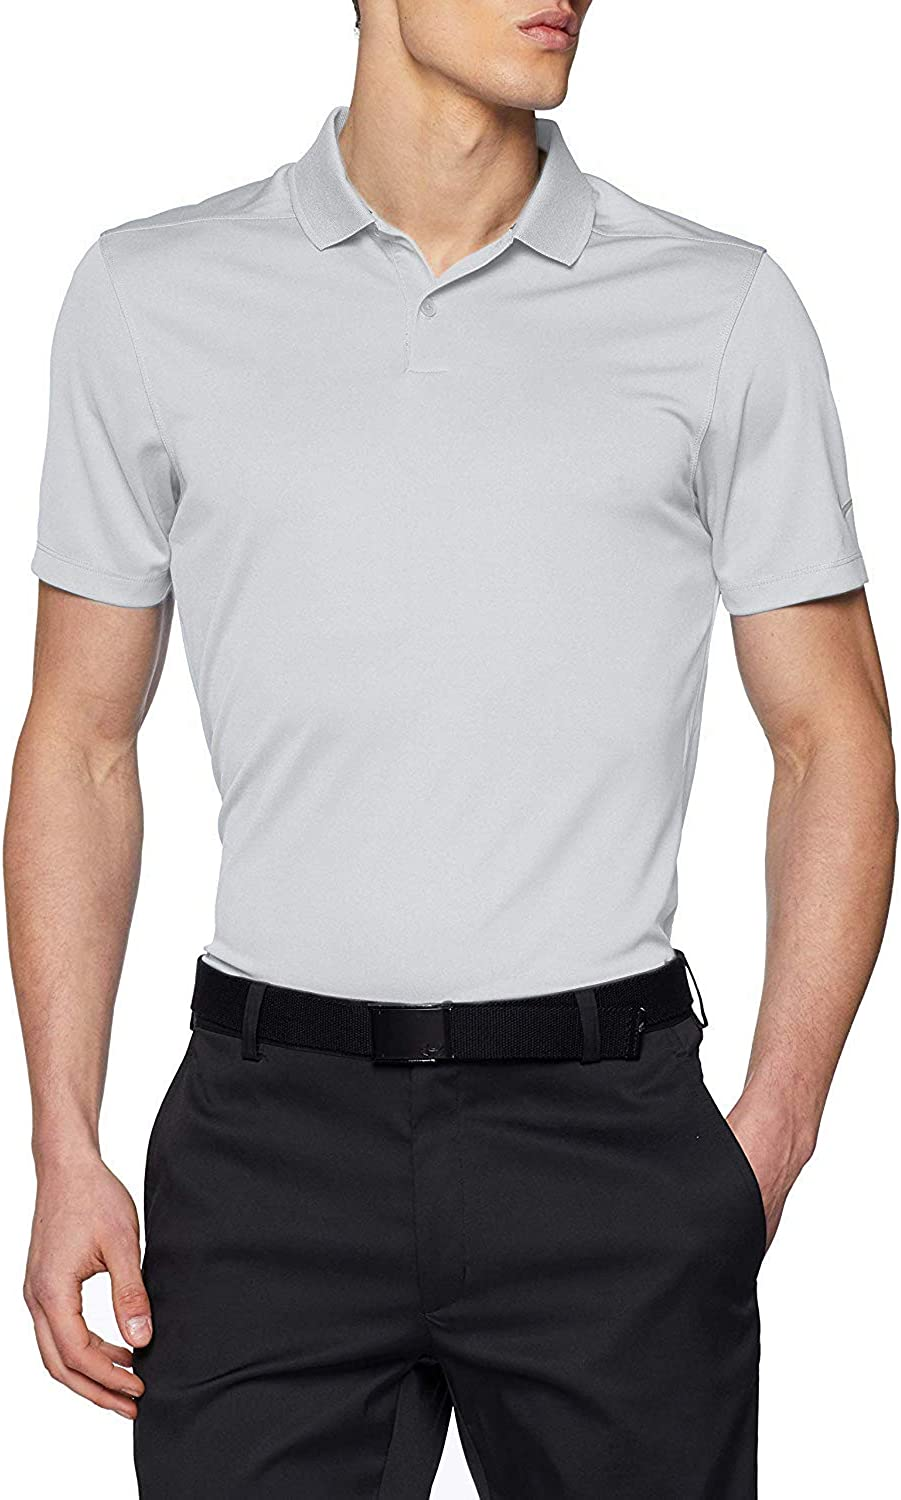 Nike Men's Dry Victory Solid Polo Golf Shirt : Clothing